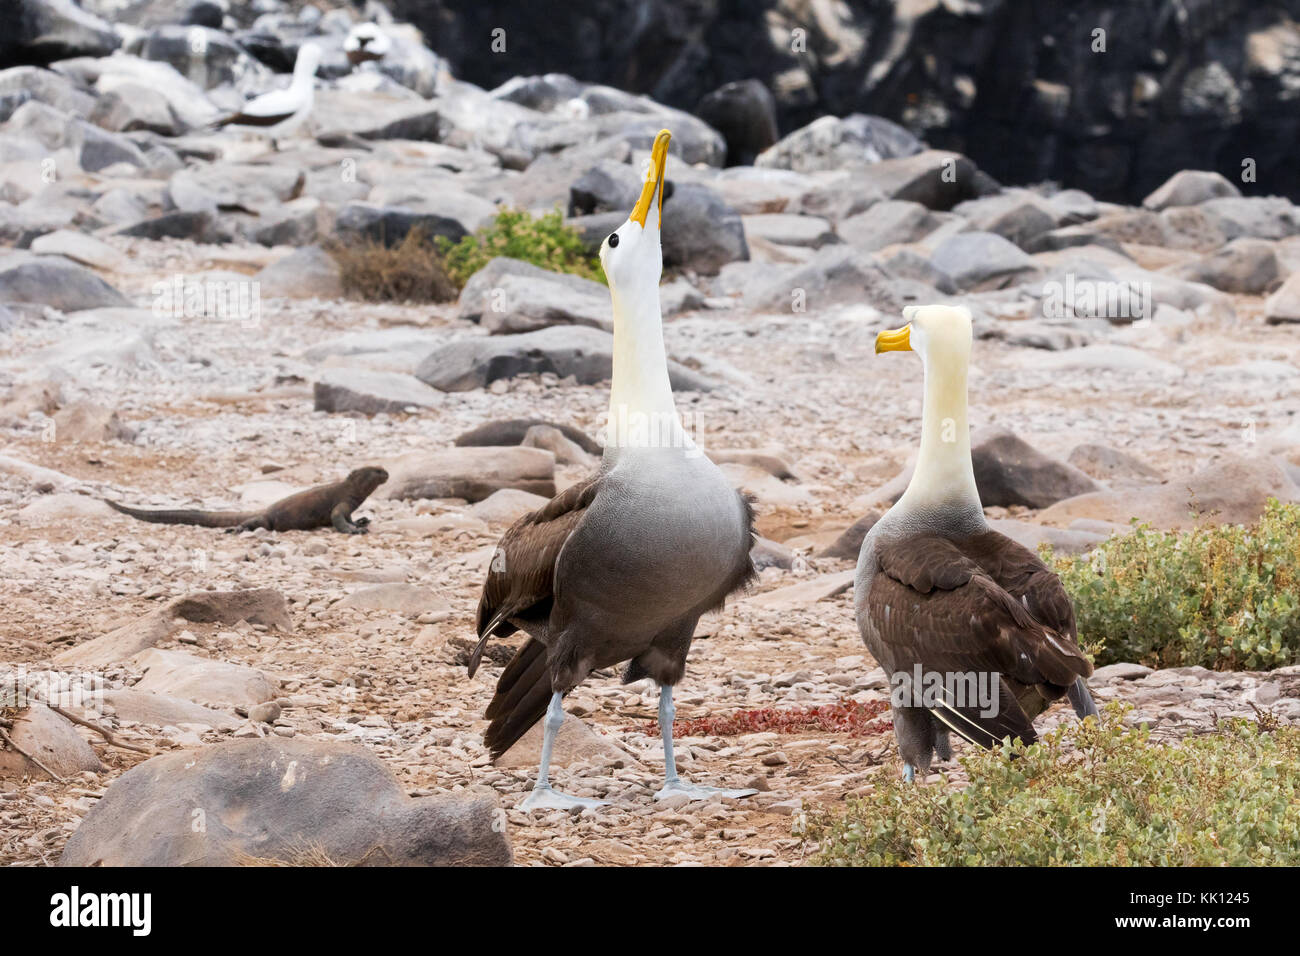 Galapagos Albatross, or Waved Albatross, ( Phoebastria irrorata ),pair courting; Espanola Island, Galapagos Islands - Stock Image